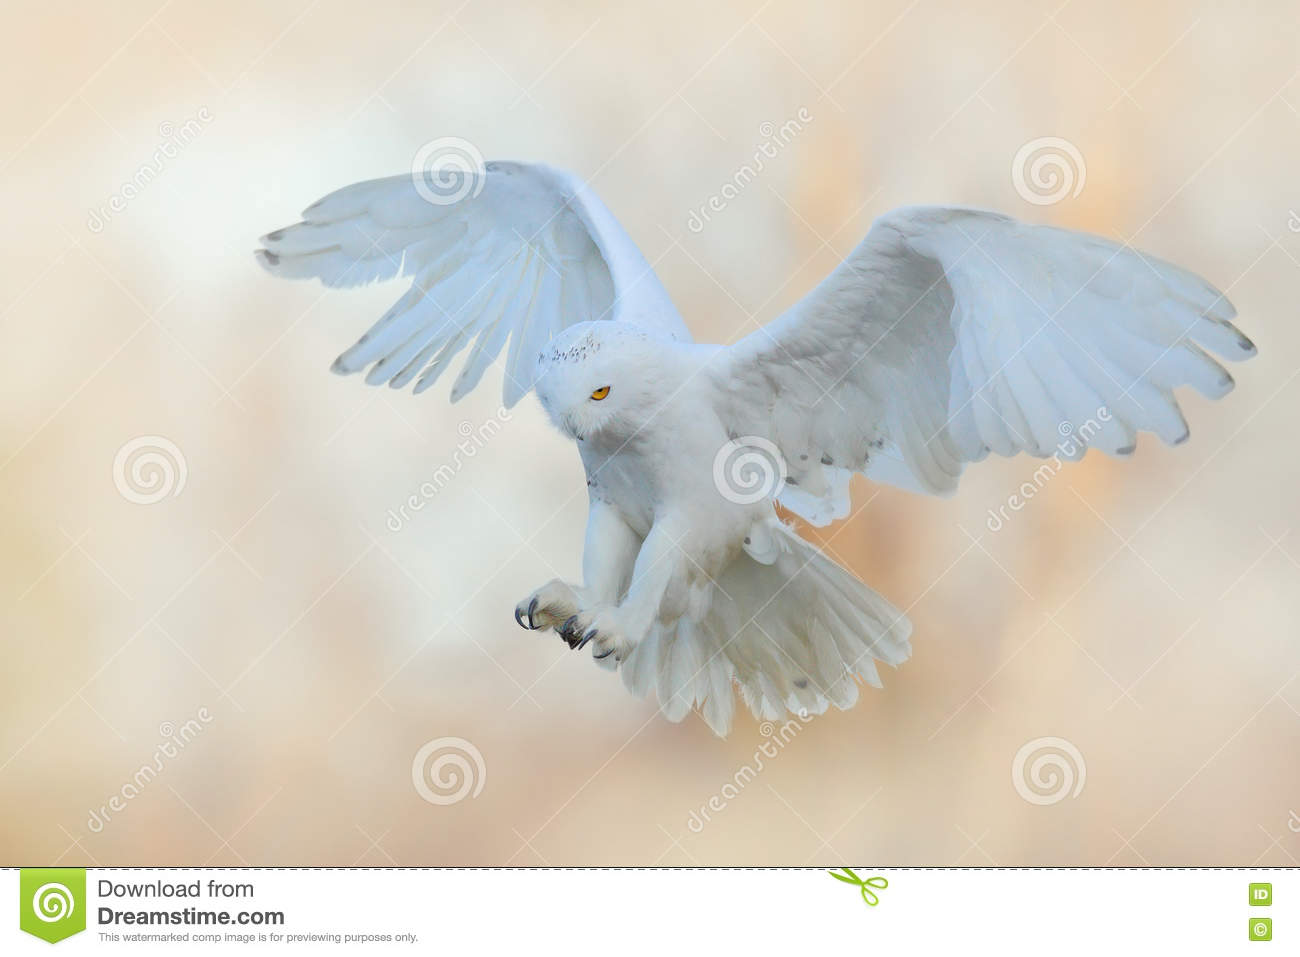 Beautiful fly of snowy owl. Snowy owl, Nyctea scandiaca, rare bird flying on the sky. Winter action scene with open wings, Finland